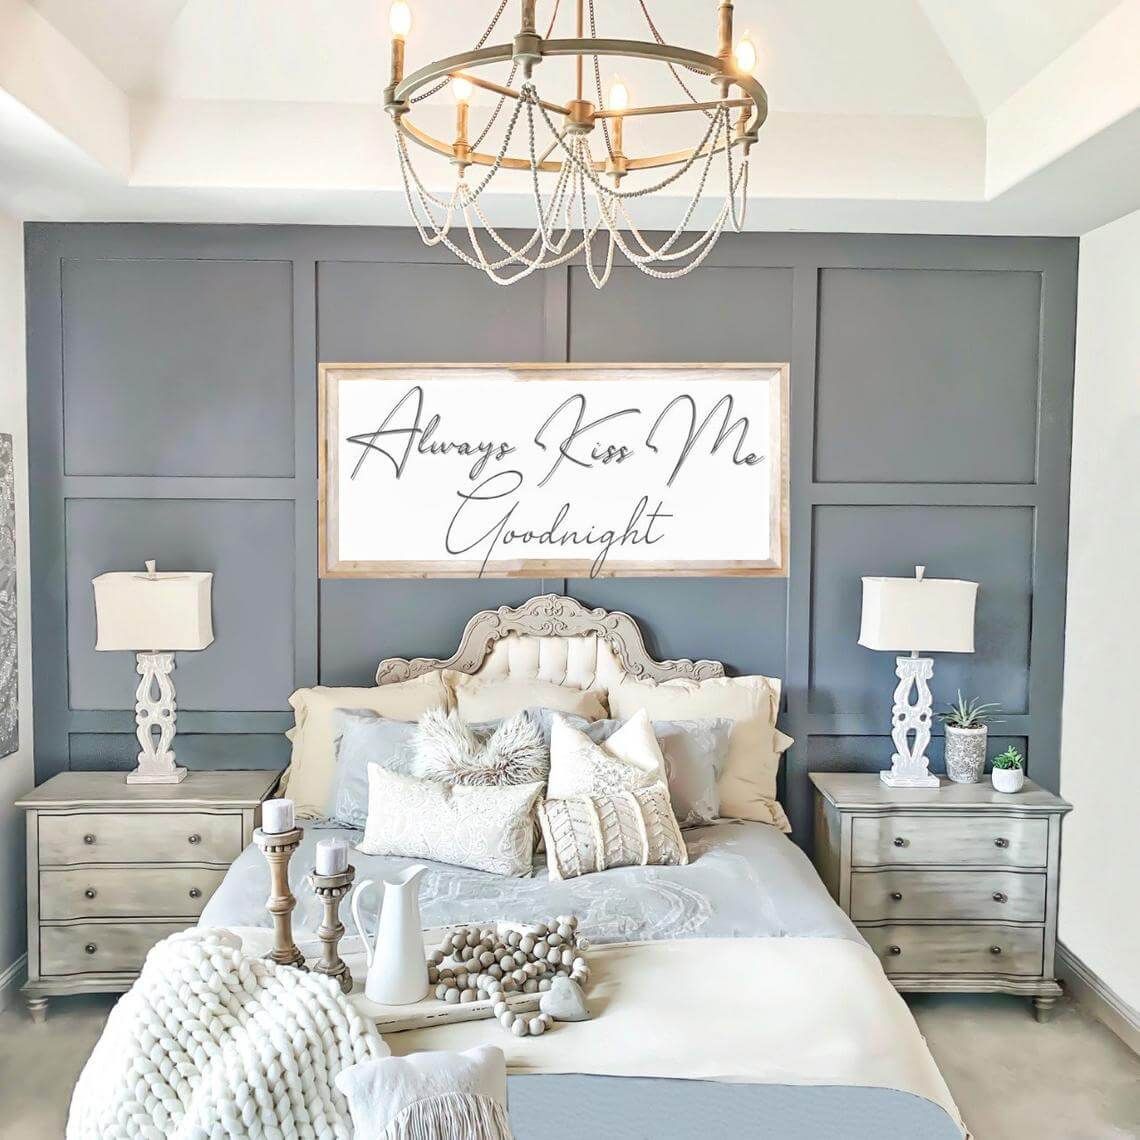 Always Kiss Me Goodnight Charming Modern Bedroom